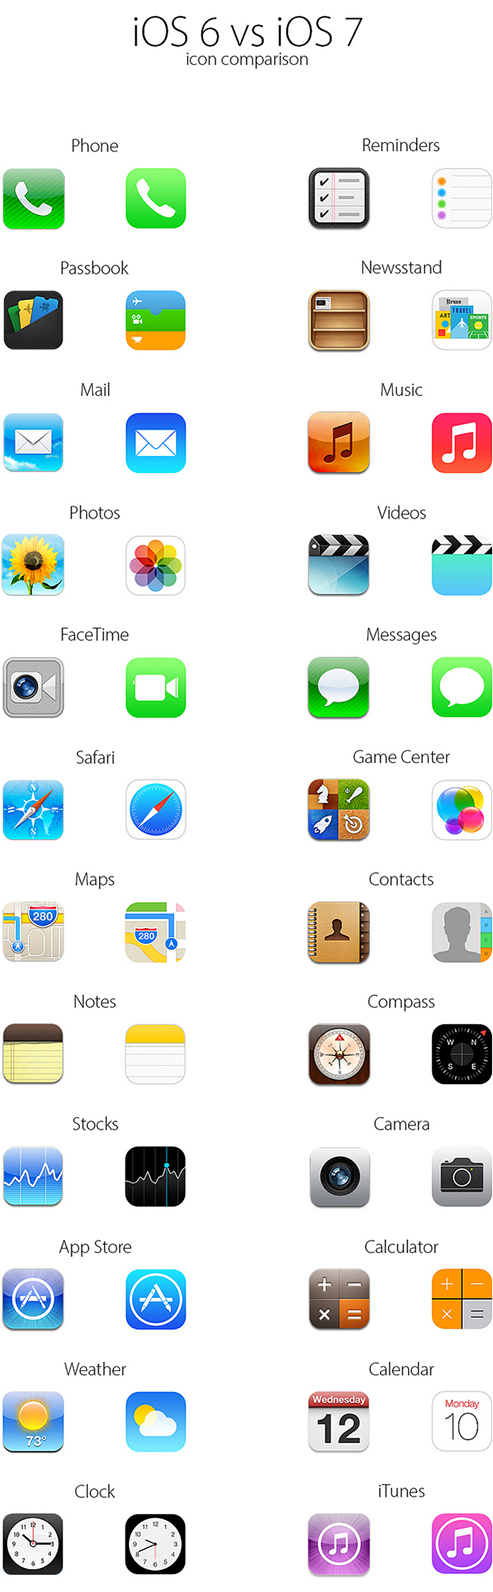 ios6_vs_io7_iconen